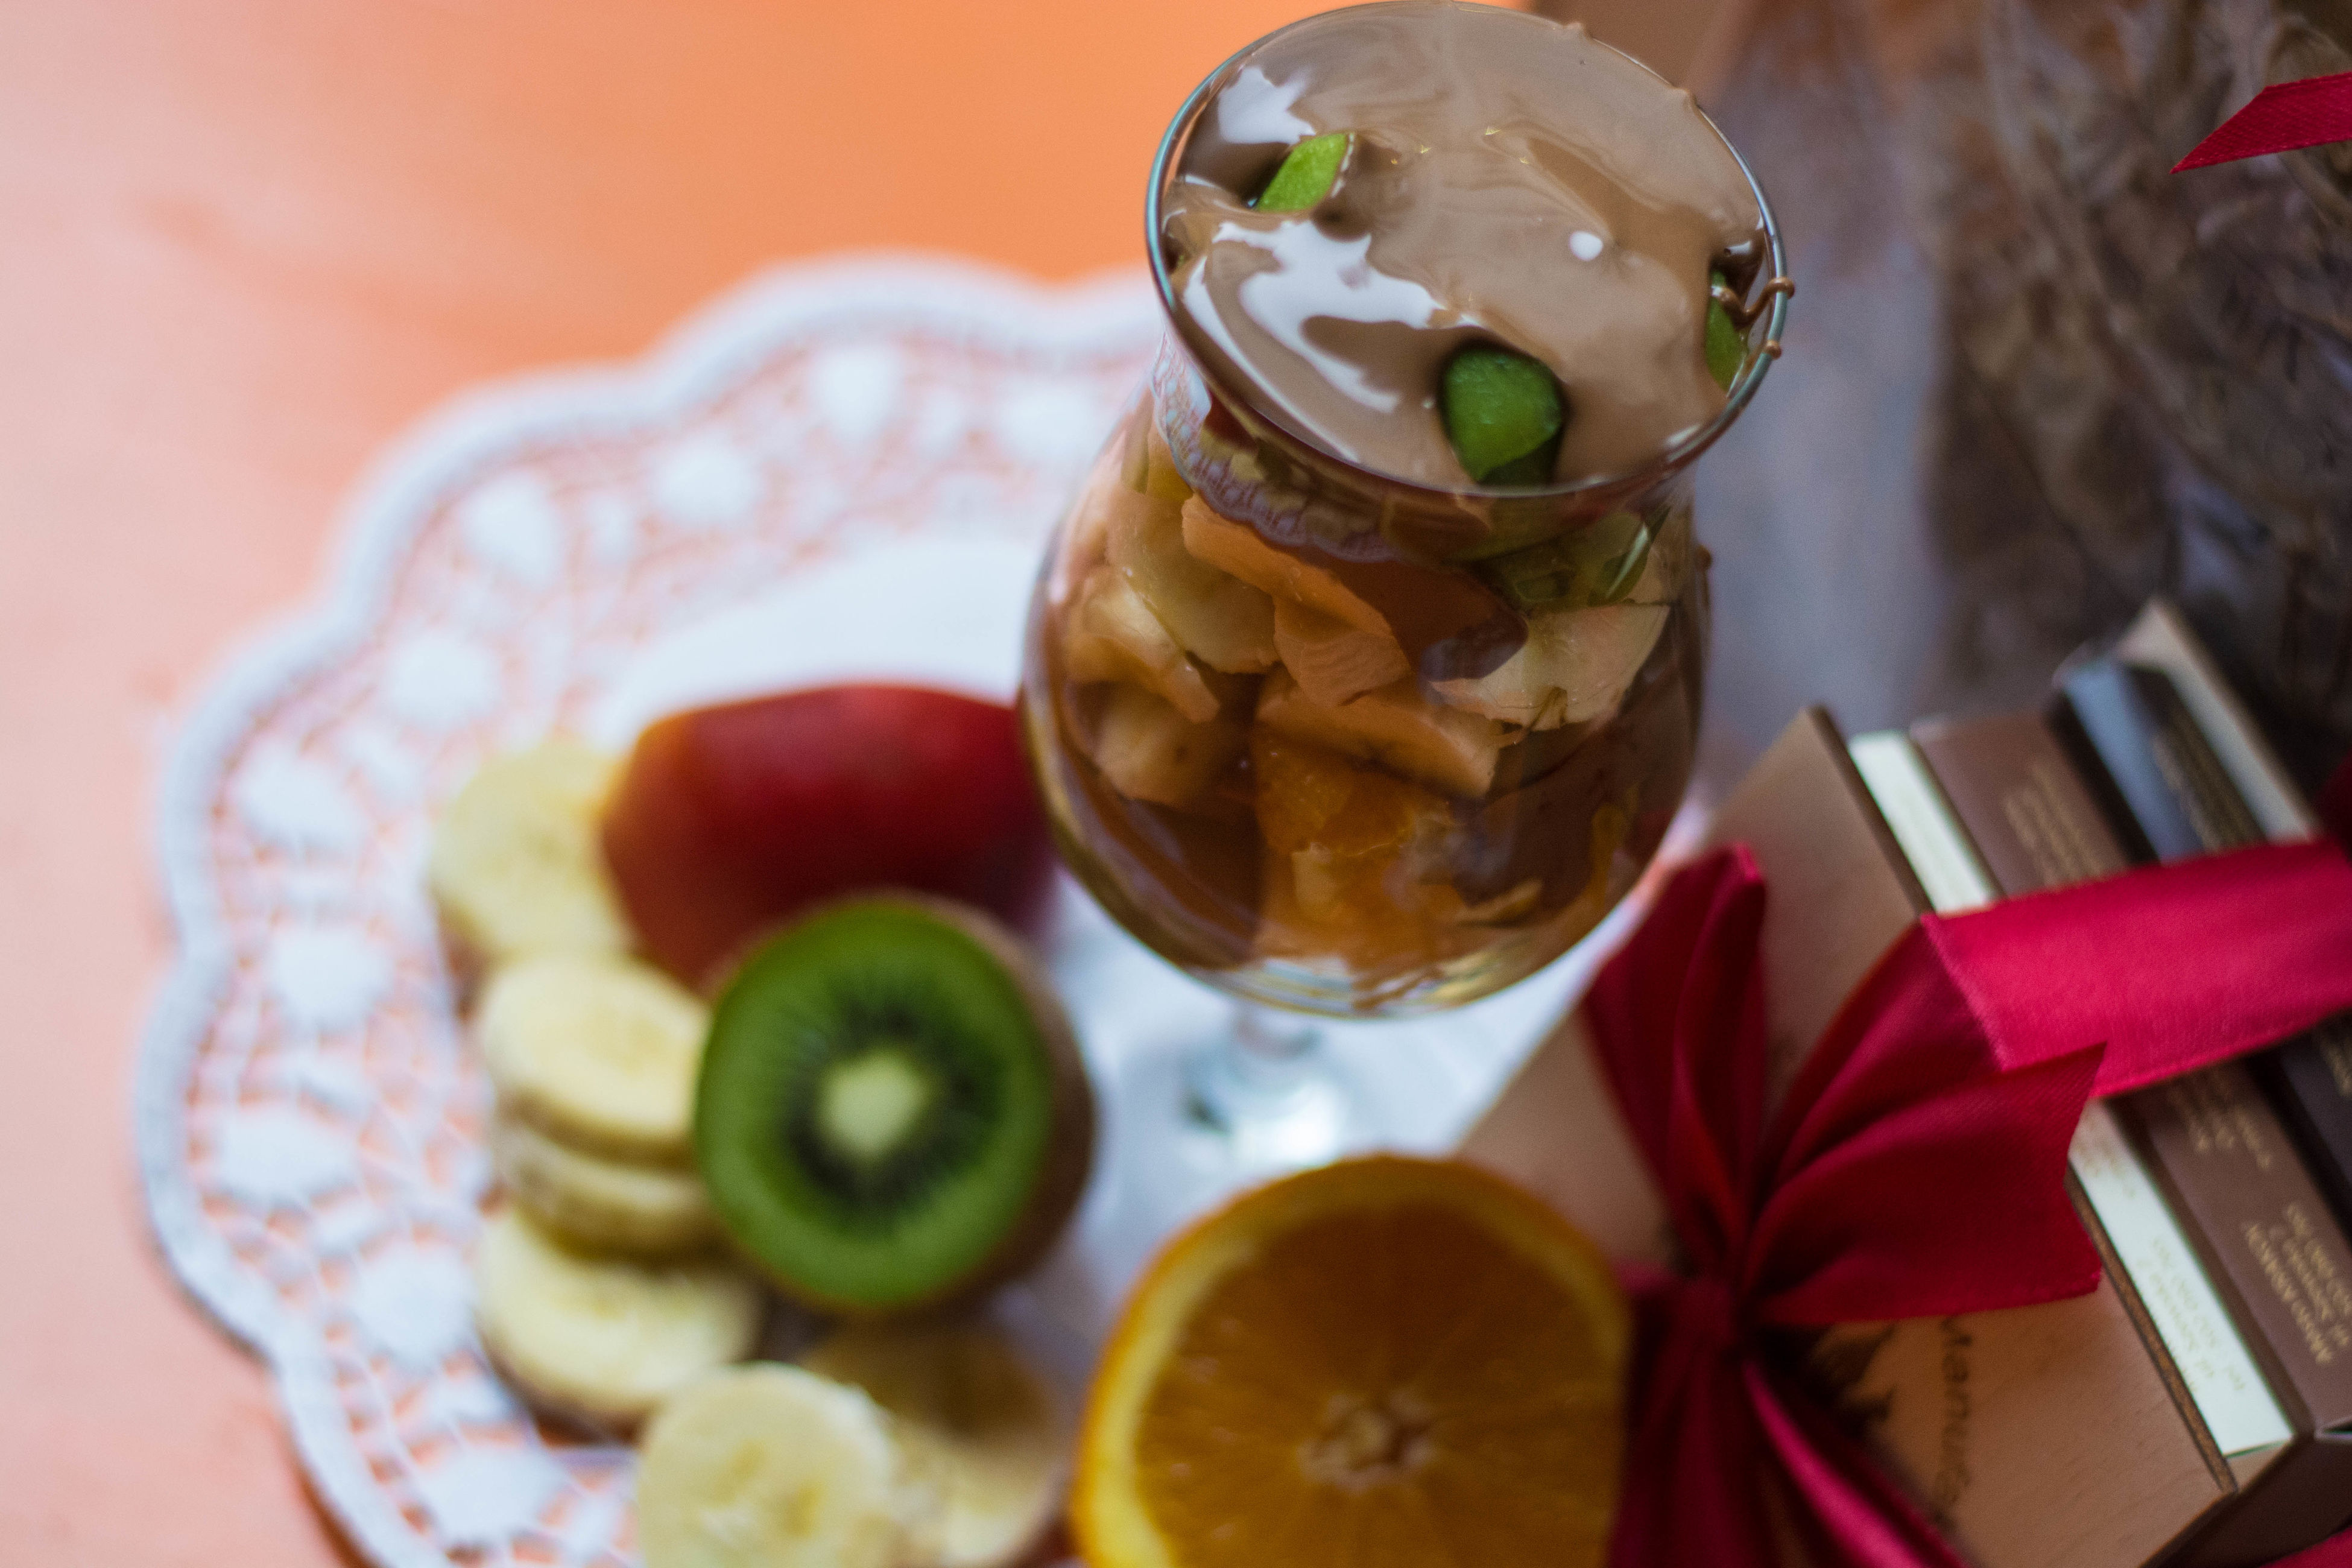 food and drink, indoors, food, freshness, ready-to-eat, still life, sweet food, table, dessert, indulgence, plate, unhealthy eating, serving size, close-up, temptation, fruit, drinking glass, refreshment, high angle view